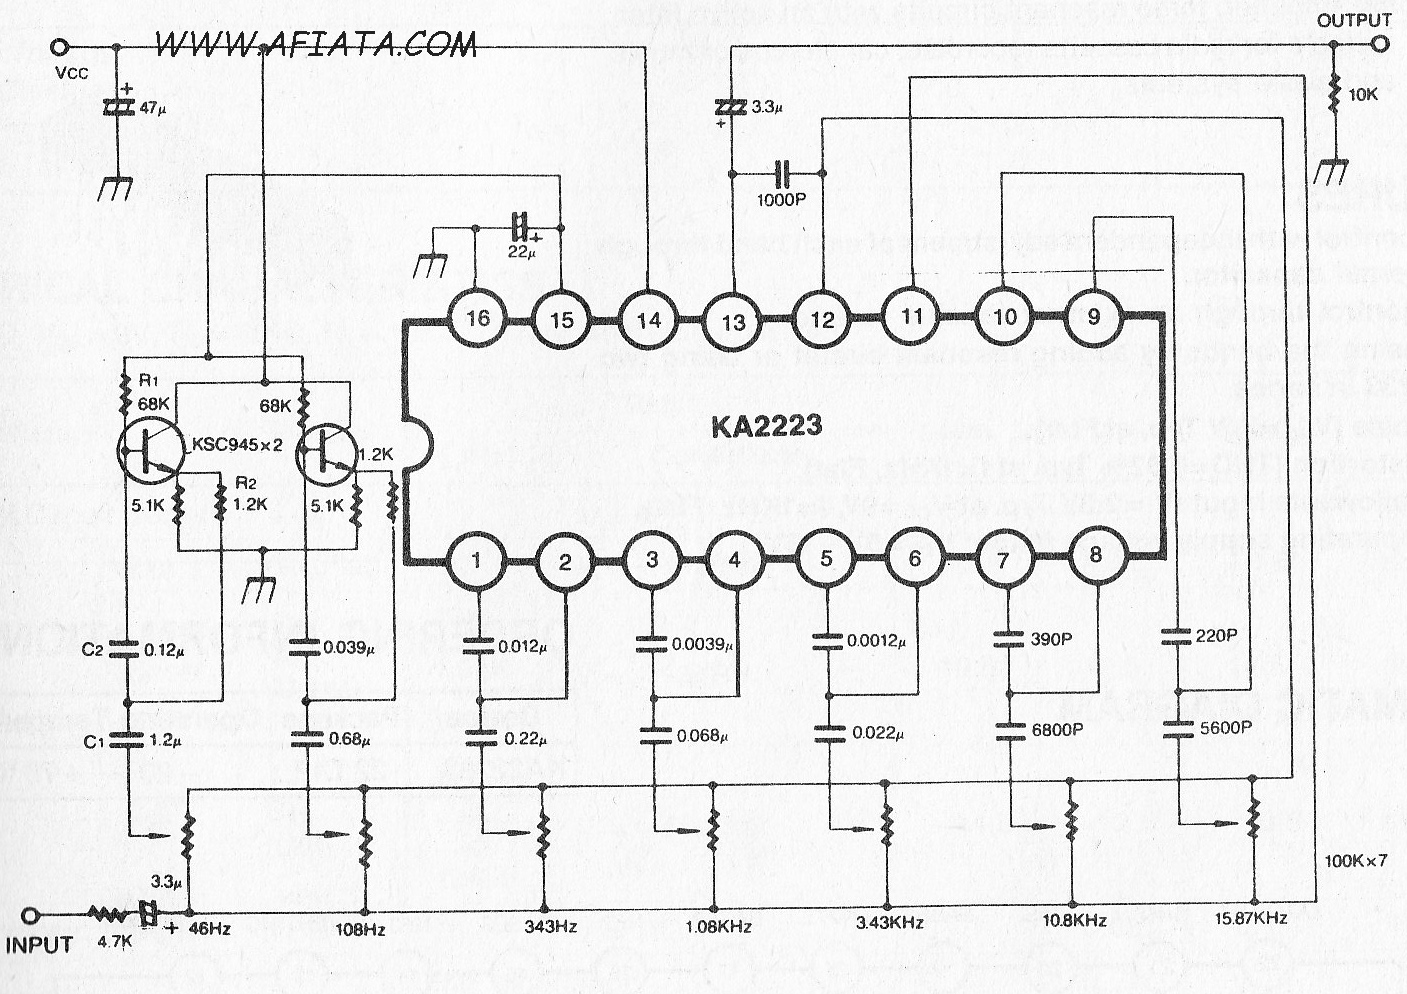 Top Circuits Page 140 4 X 55w Power Amplifier By Tda7560 4x55w Audio Circuit Diagram Using 5 Band Graphic Equalizer